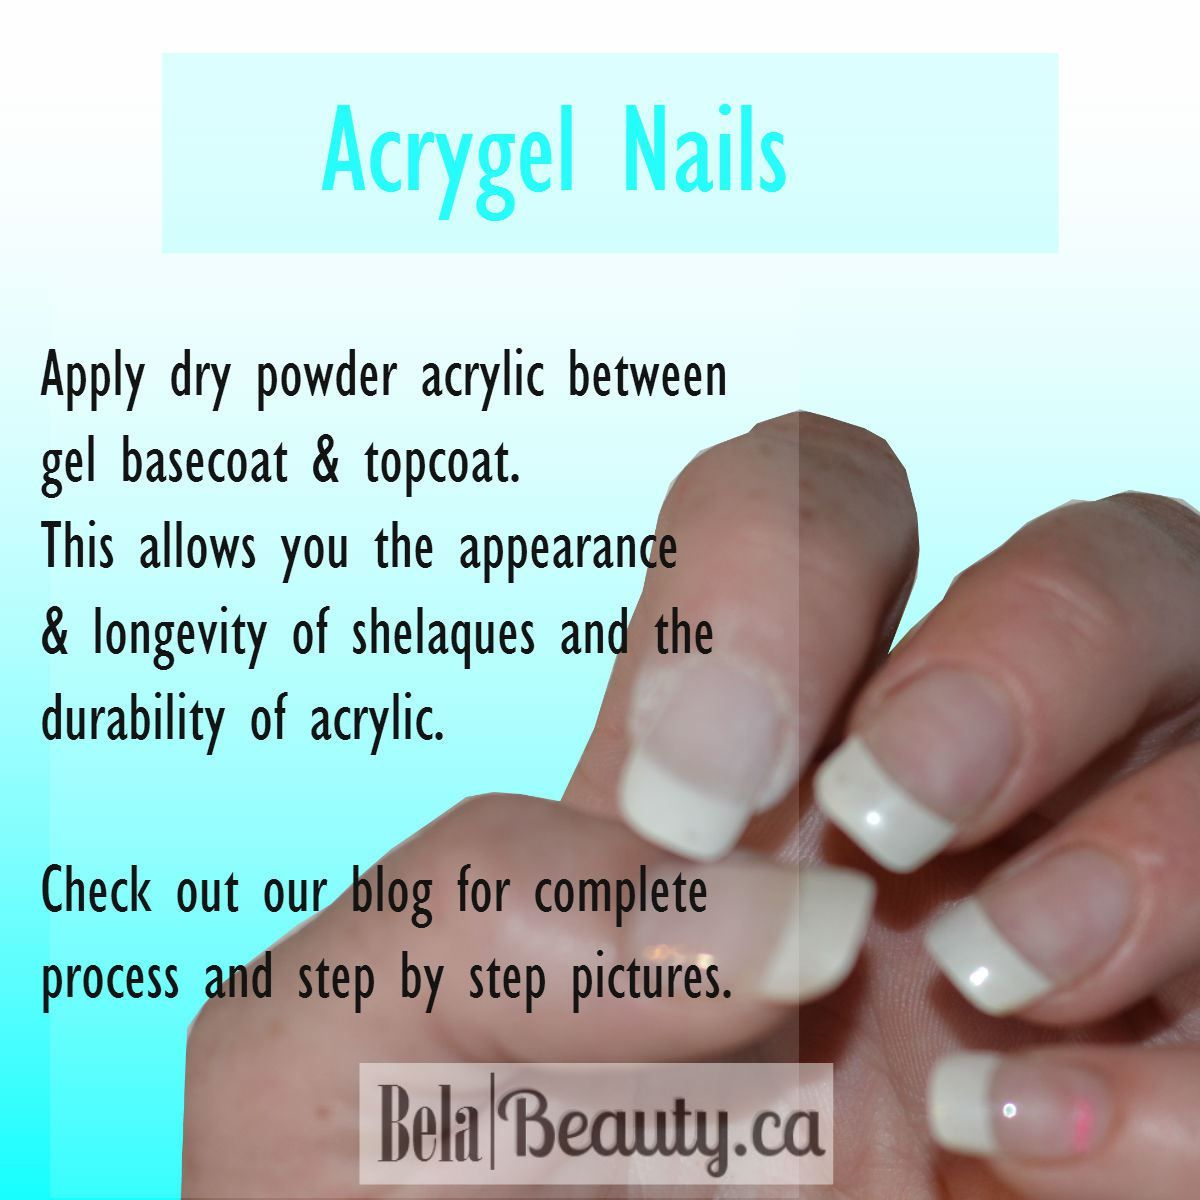 acrygel process | Everything Nails: Polish, Acrylic, Gel, Etc ...